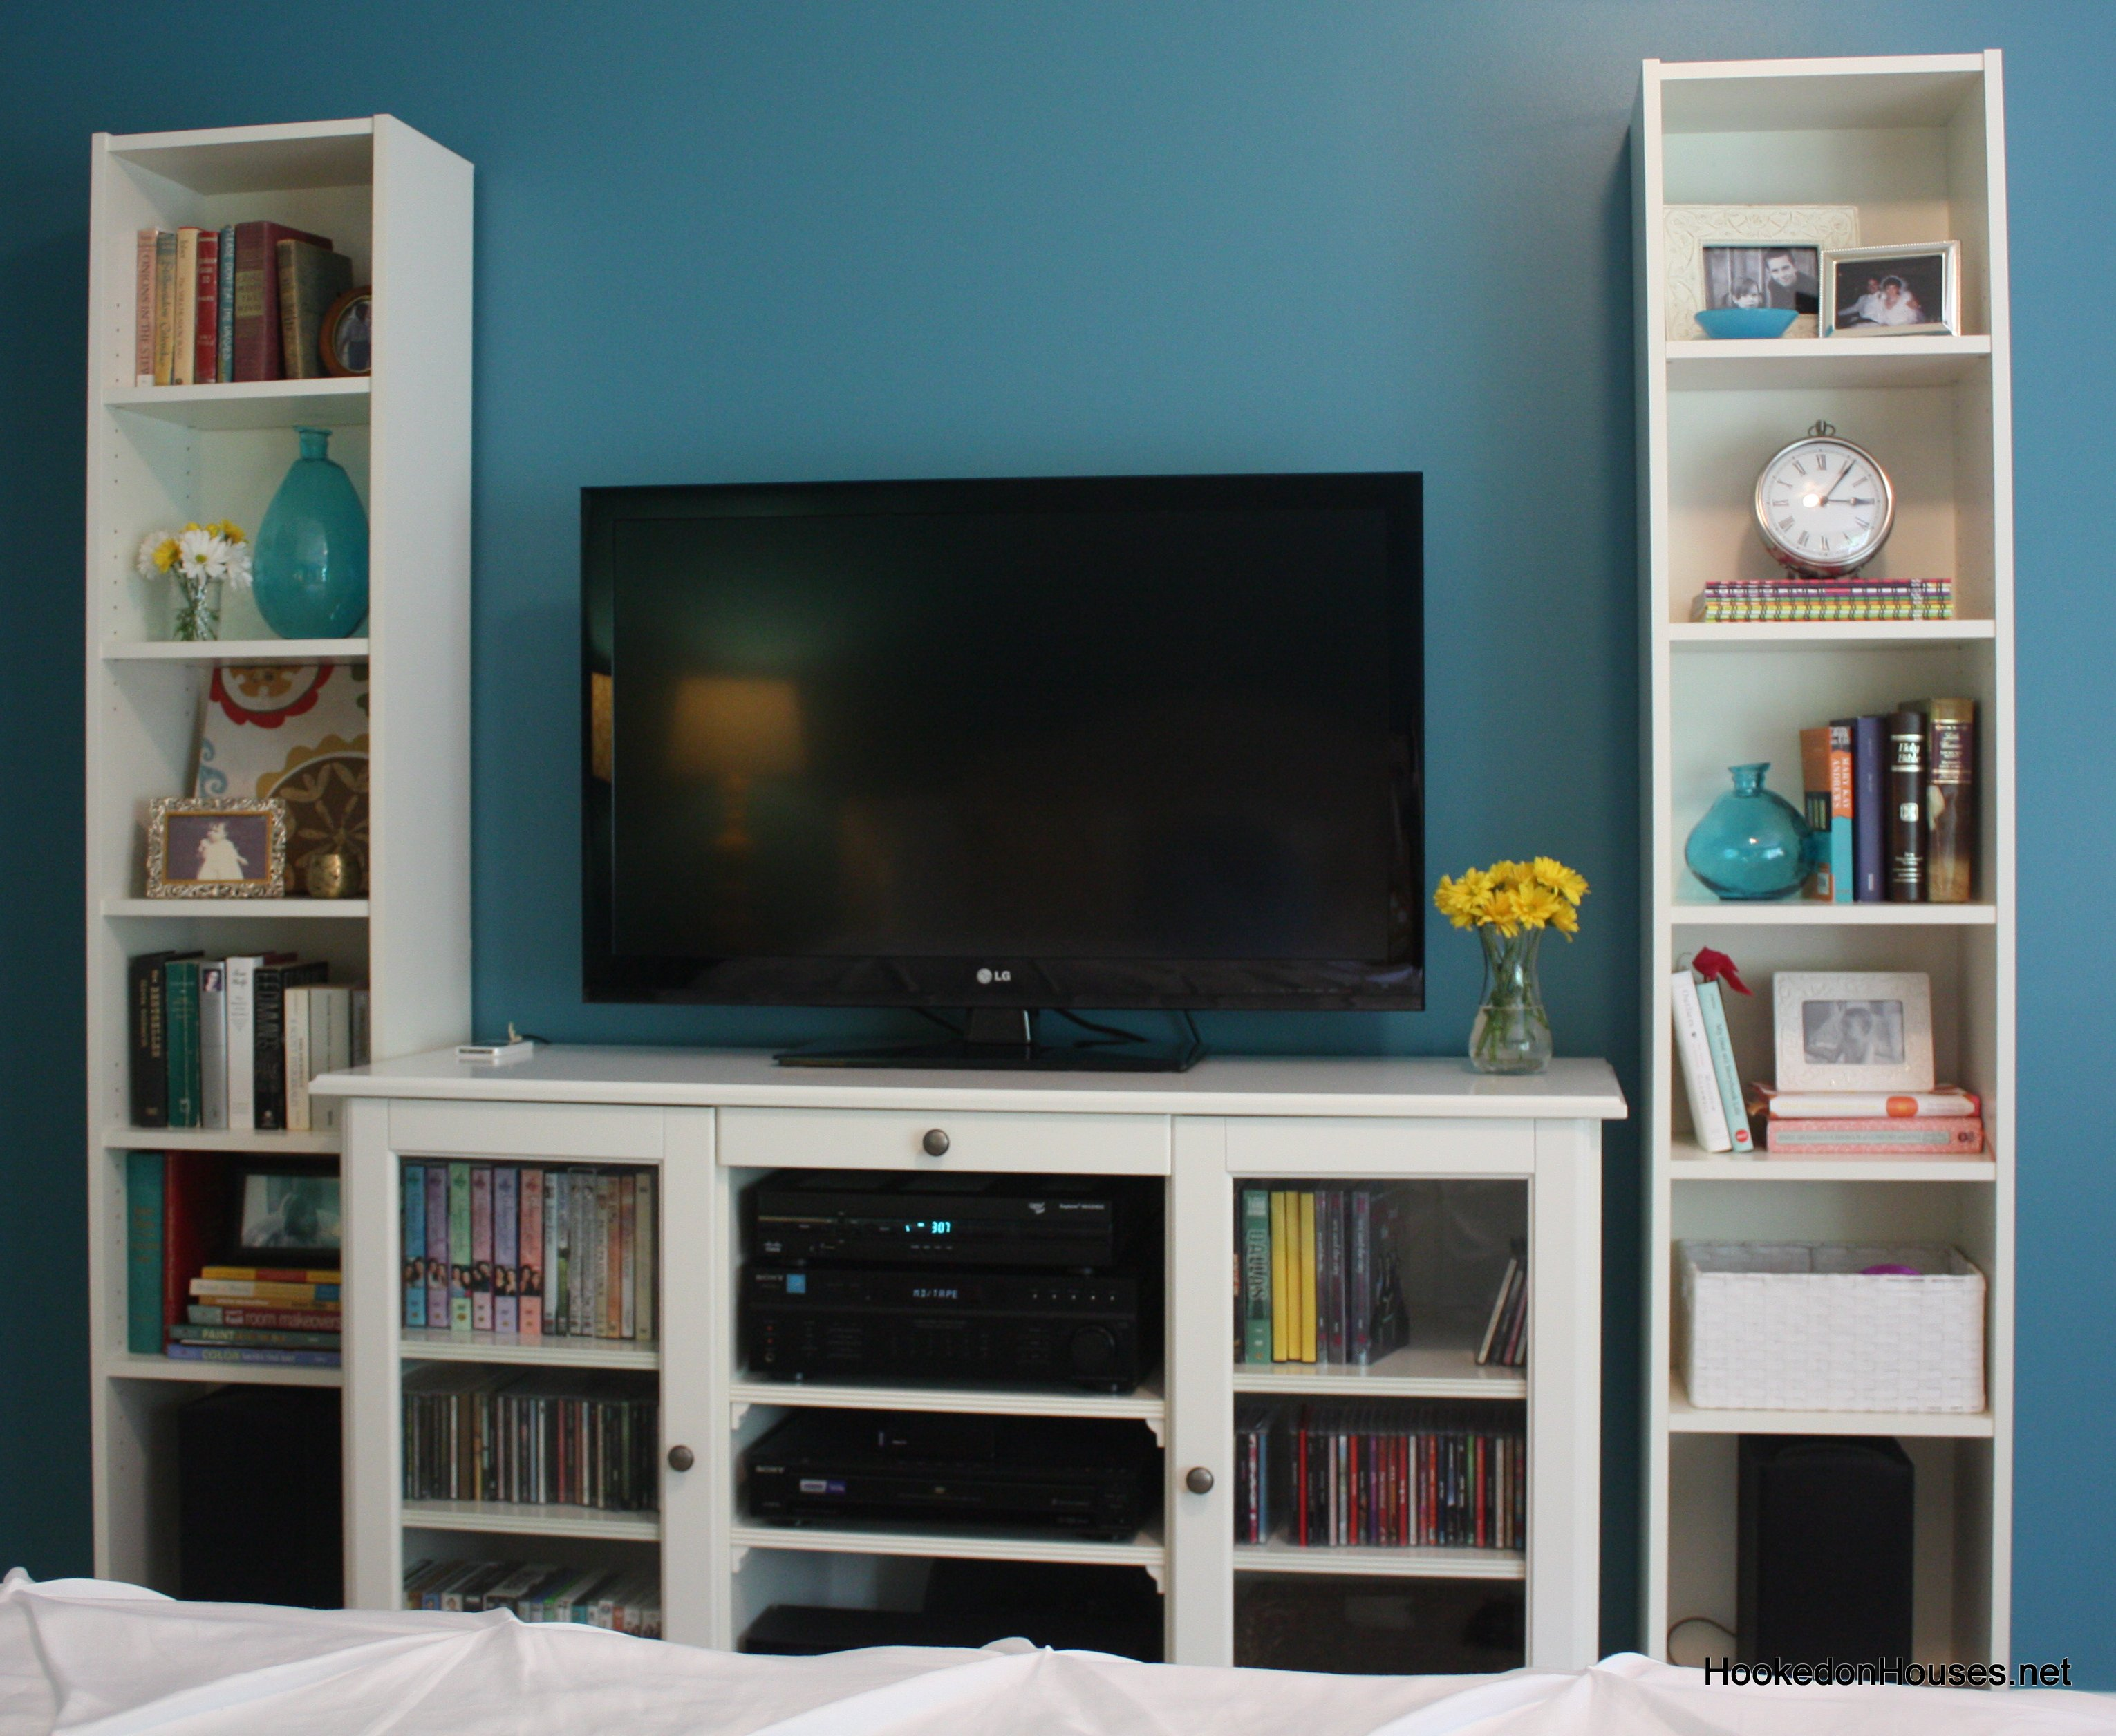 TV cabinet and bookshelves - Hooked on Houses